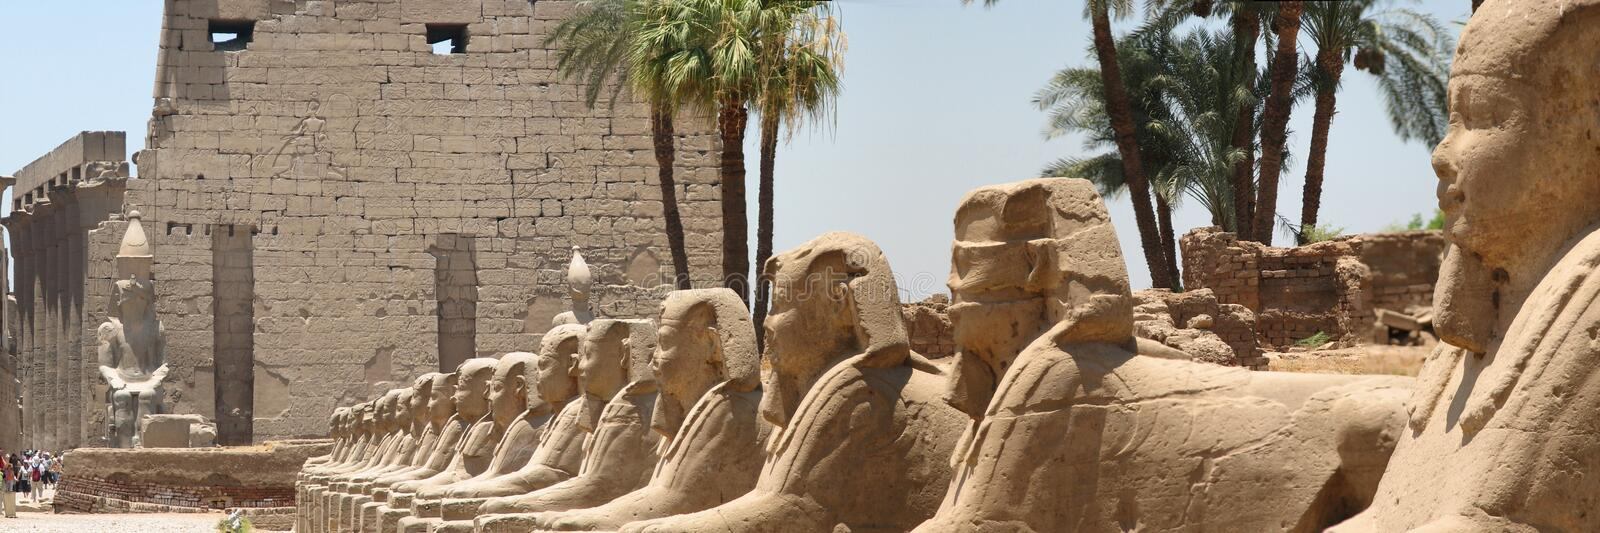 Download Sphinx Corridor Stock Photo - Image: 8652430